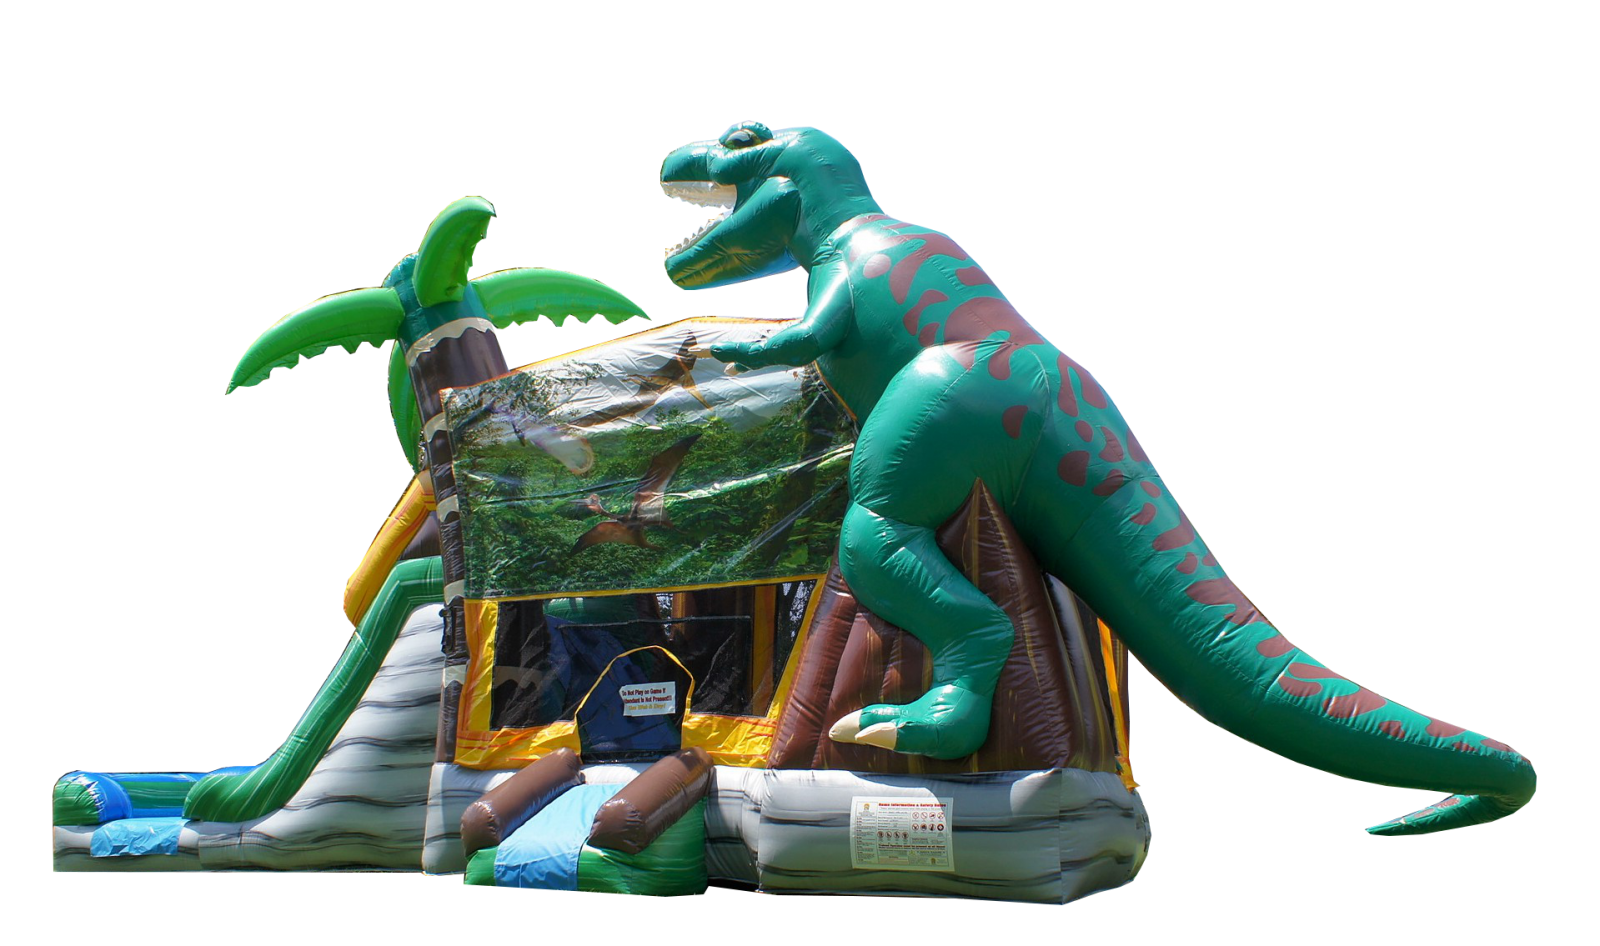 Jurassic dinosaur bounce house Nashville TN Jumping Hearts Party Rentals